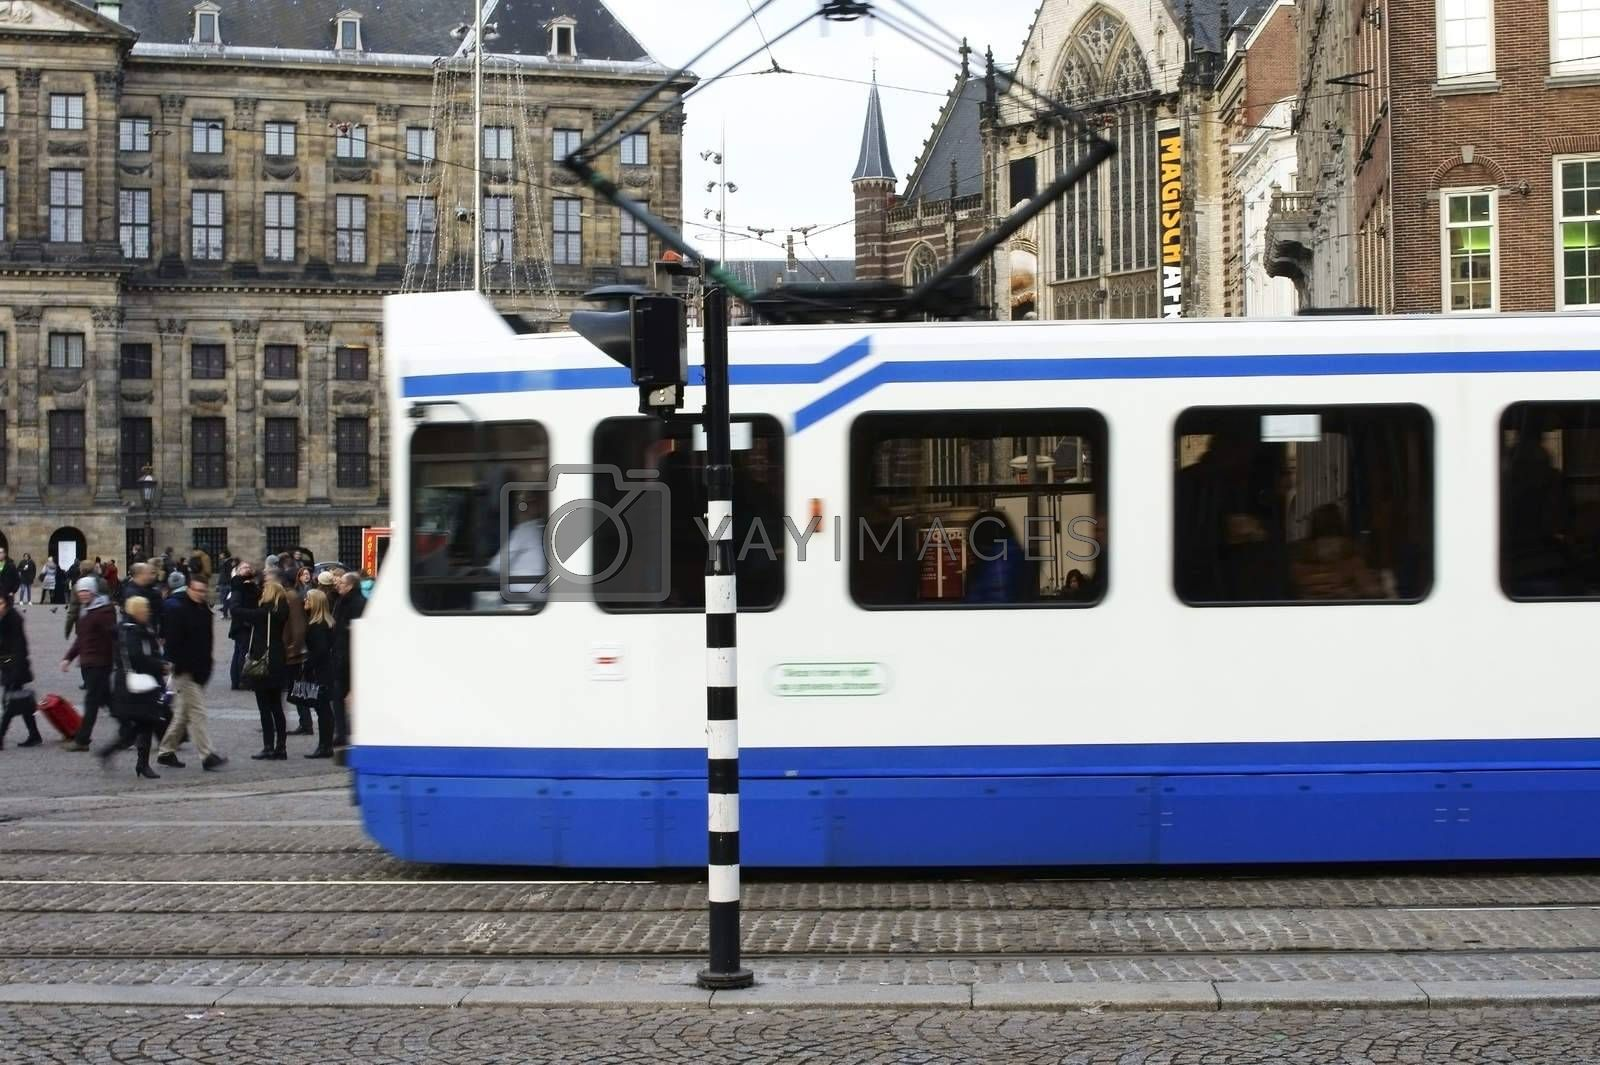 Amsterdam, Netherlands - December 29, 2014: Group of people and a tram cross the Dam Square on December 29, 2014 in Amsterdam.